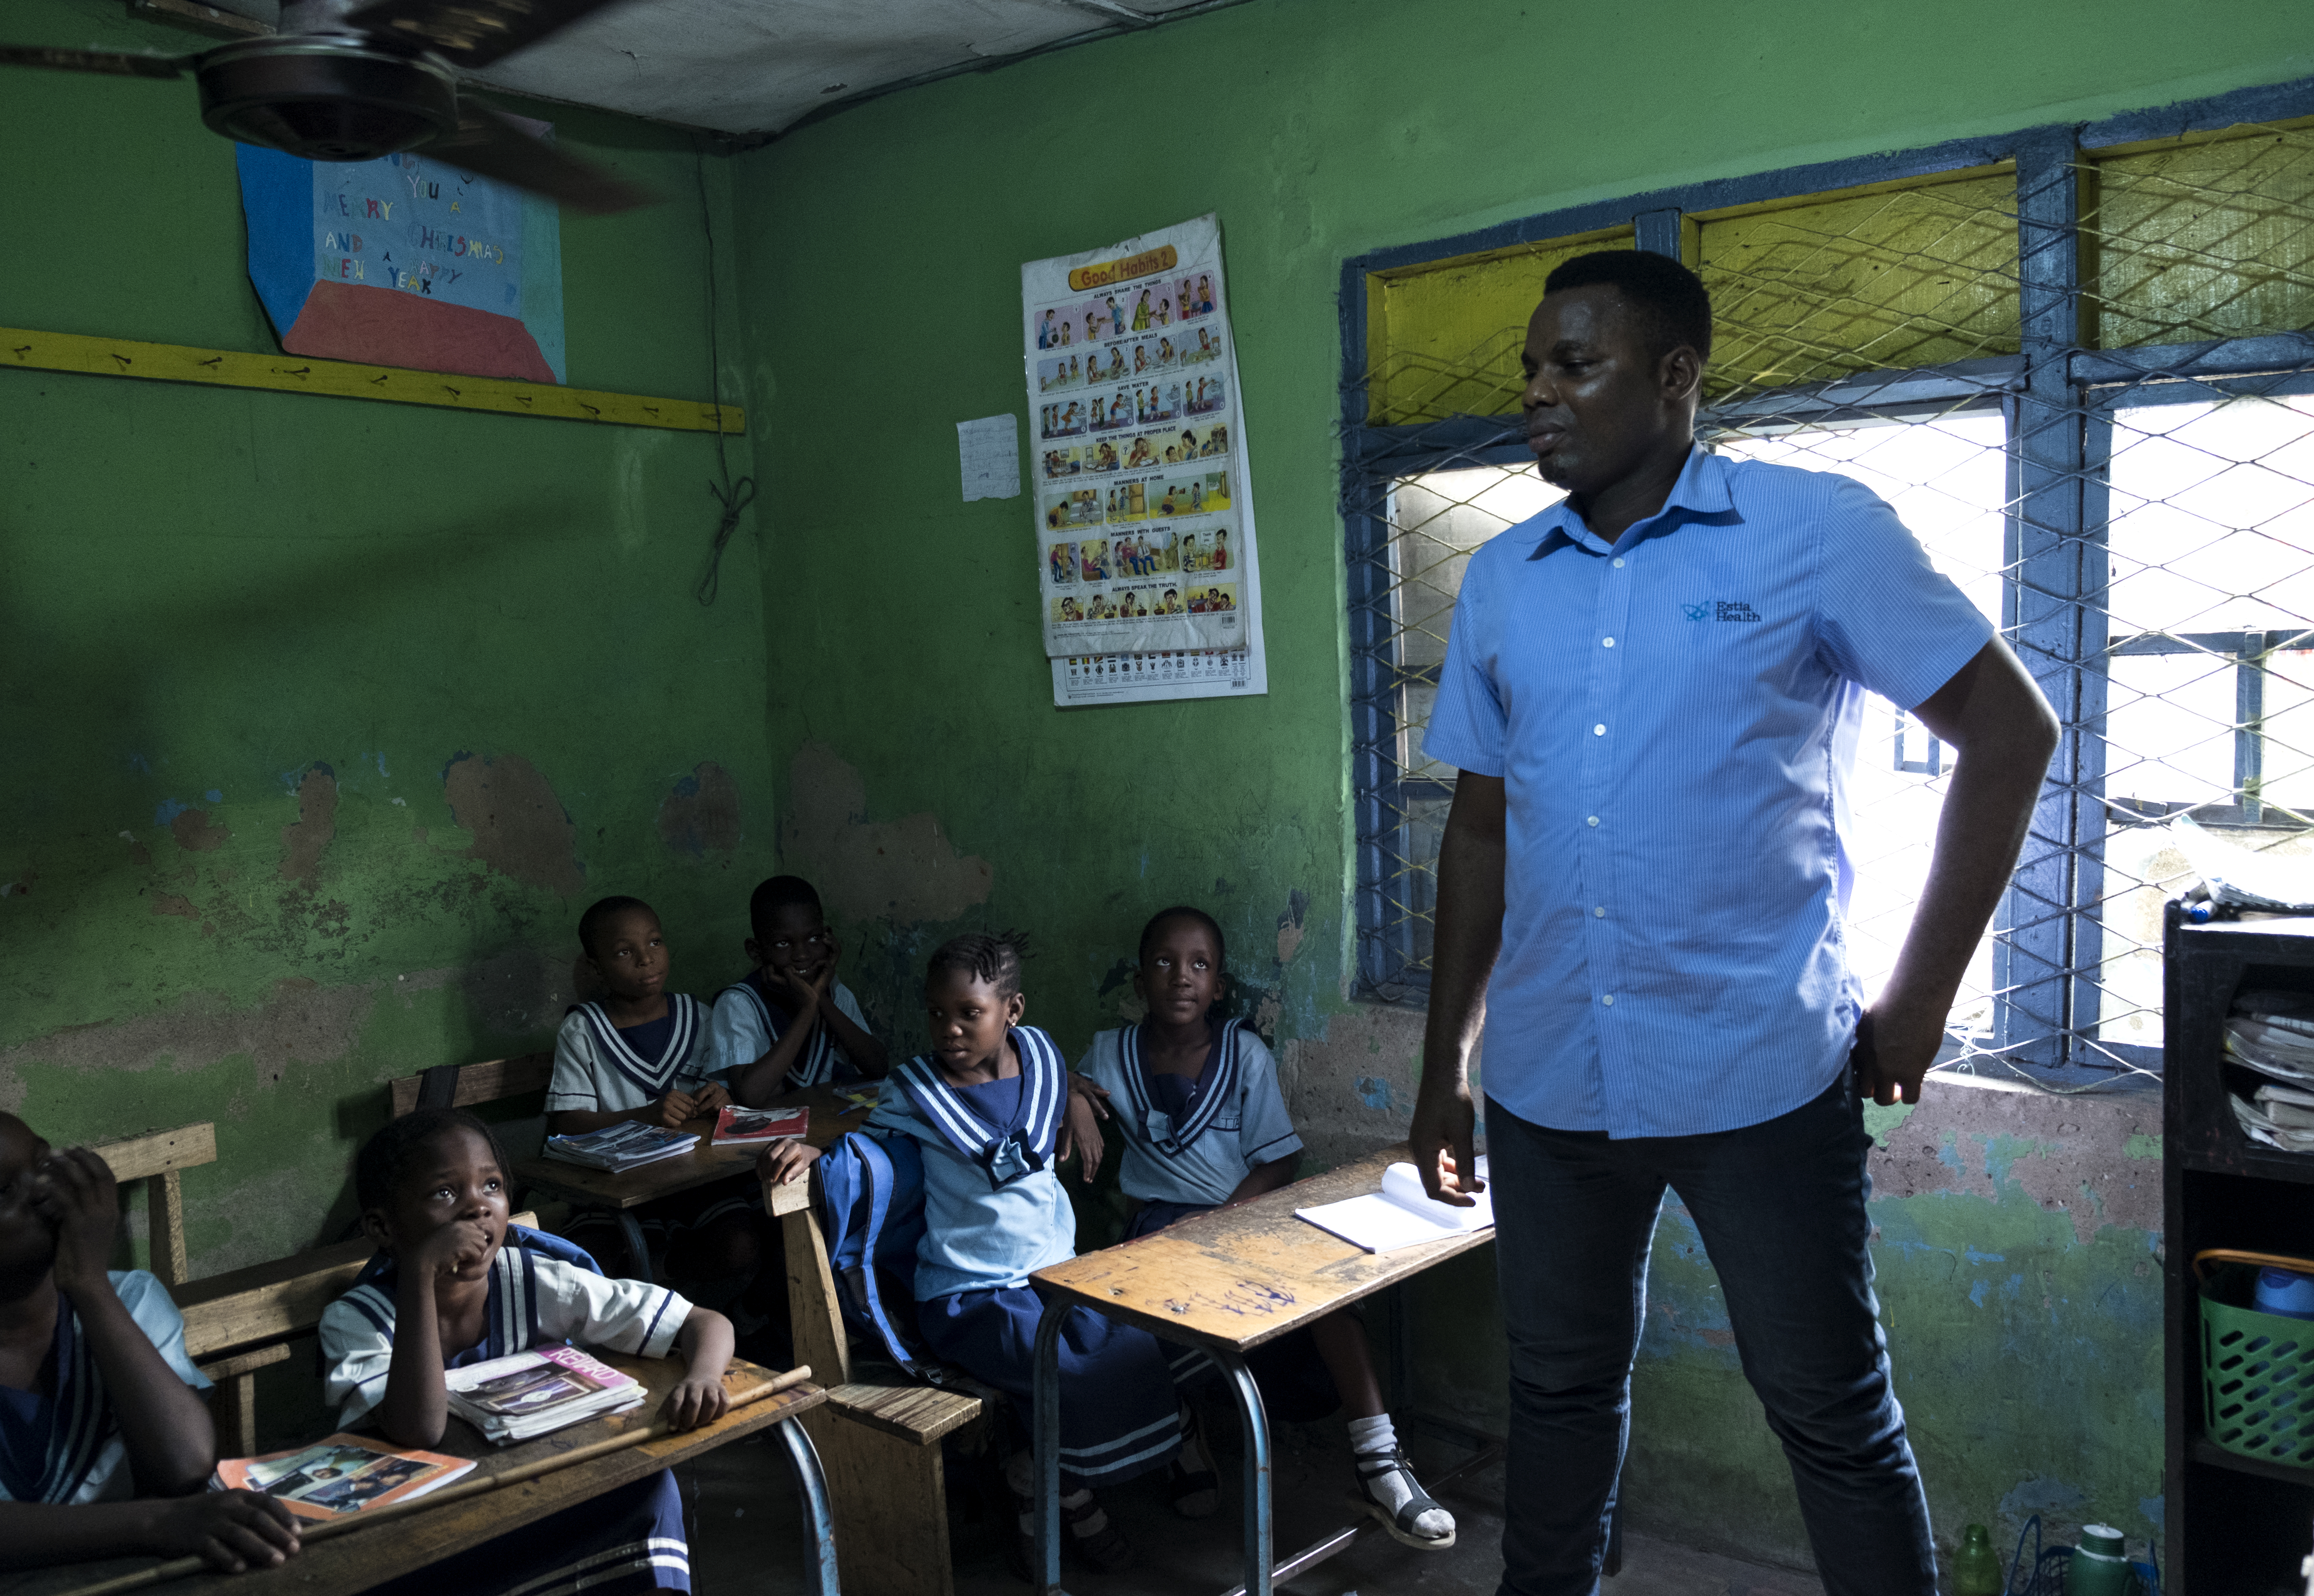 Eric Obuh gives a speech in a classroom in Lagos.